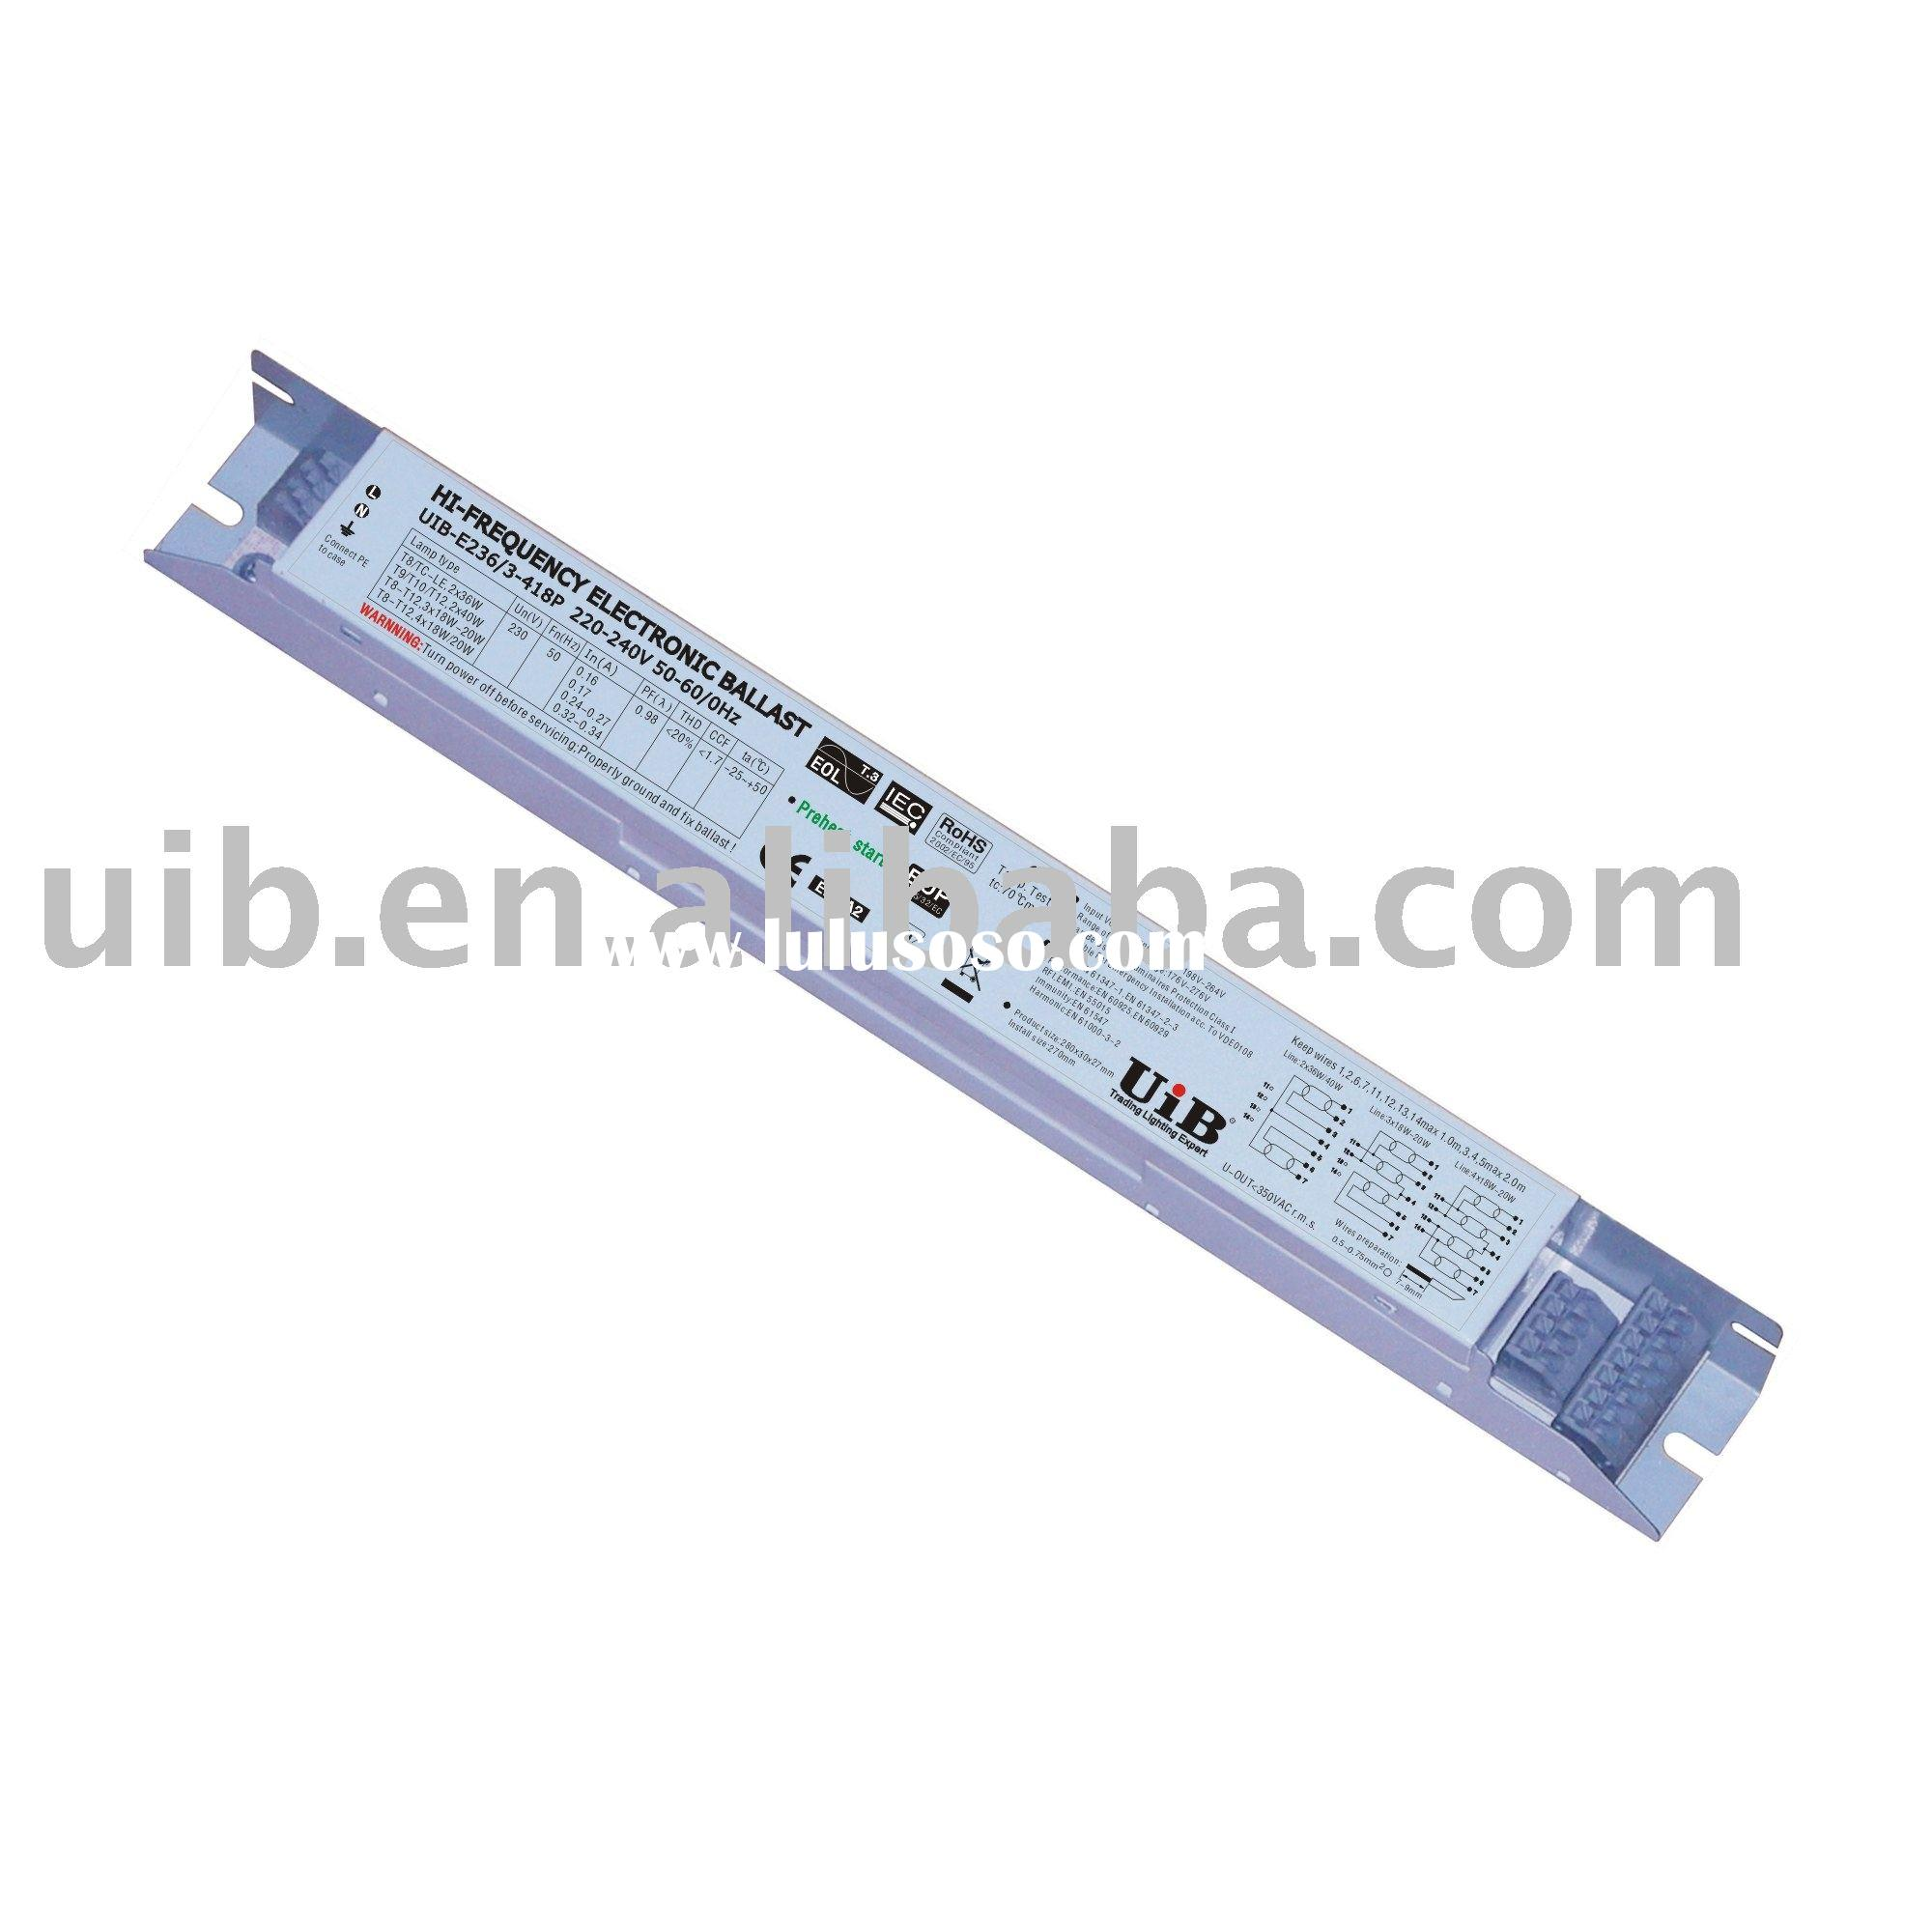 sell preheat start eup electronic ballast 2x36w for sale price china manufacturer supplier 1486472